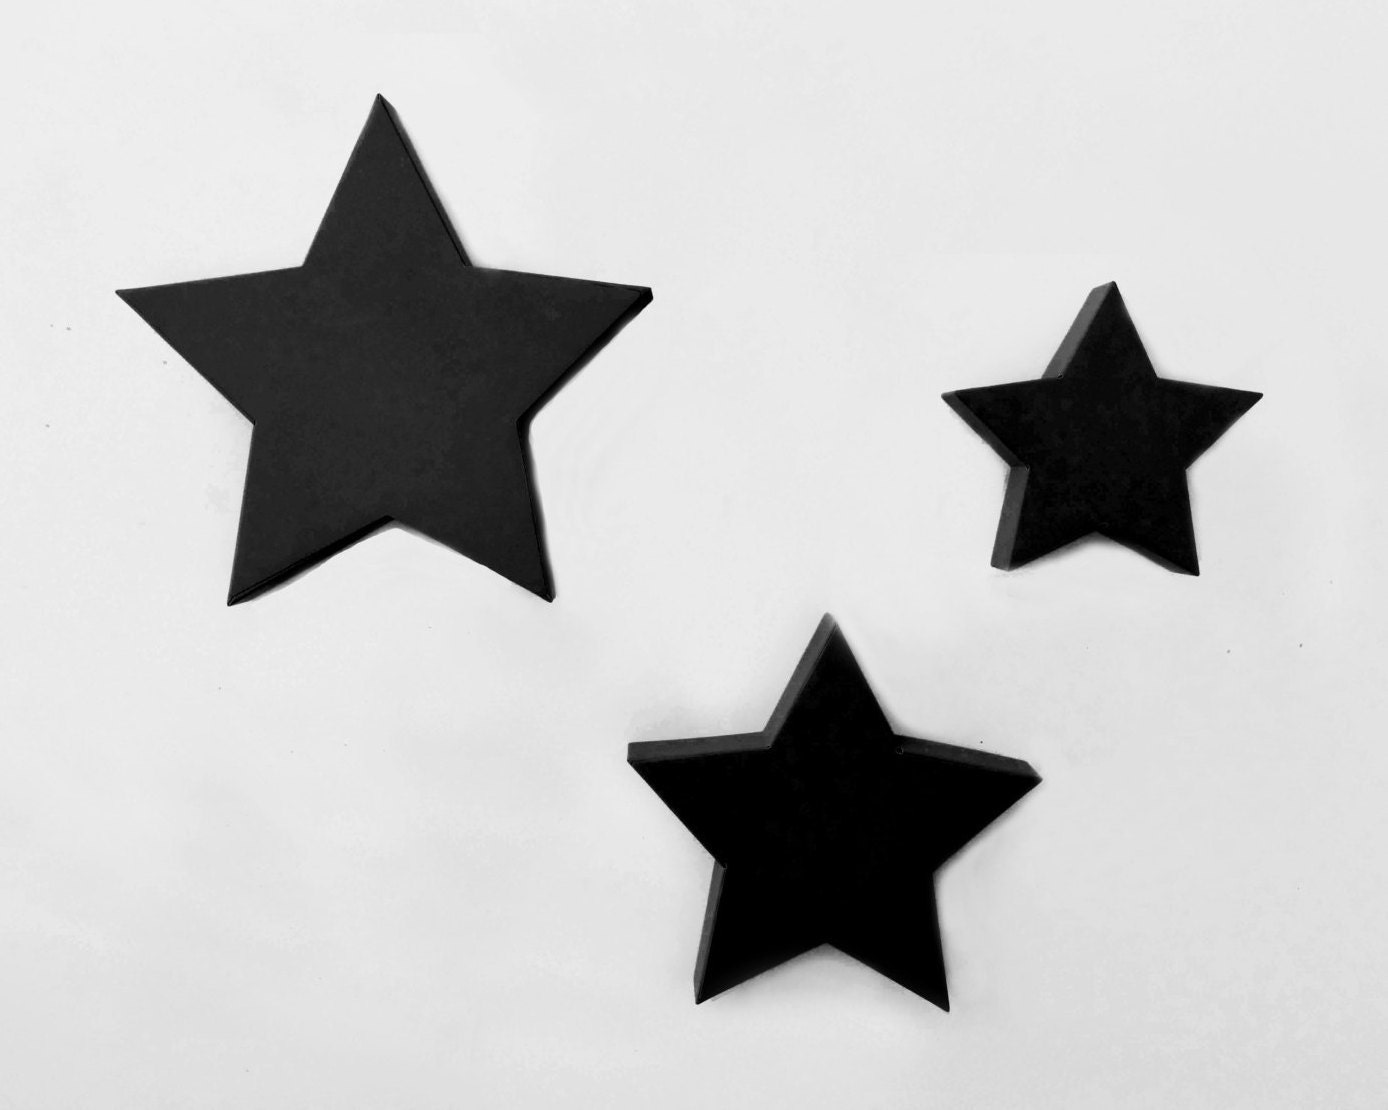 Wall Art Metal Stars : Scandinavian wall decor metal star art large d by